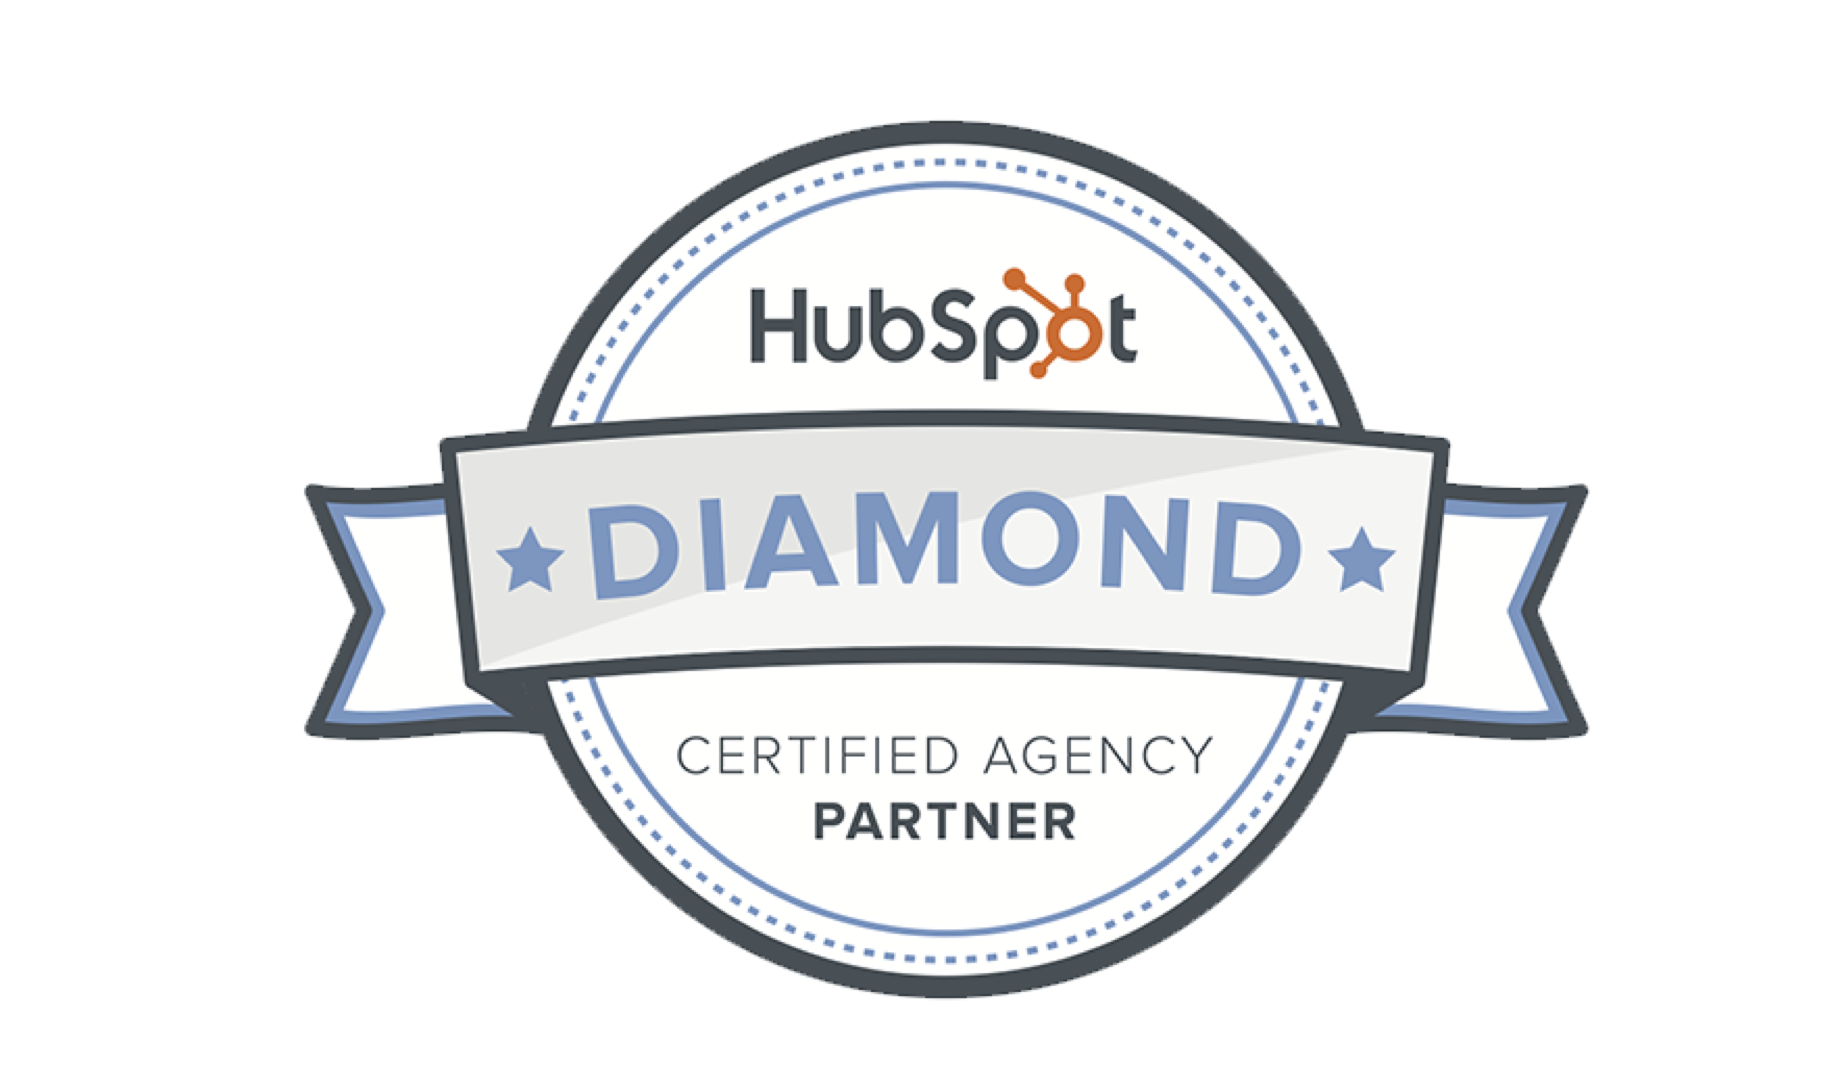 HubSpot Diamond Partner.png